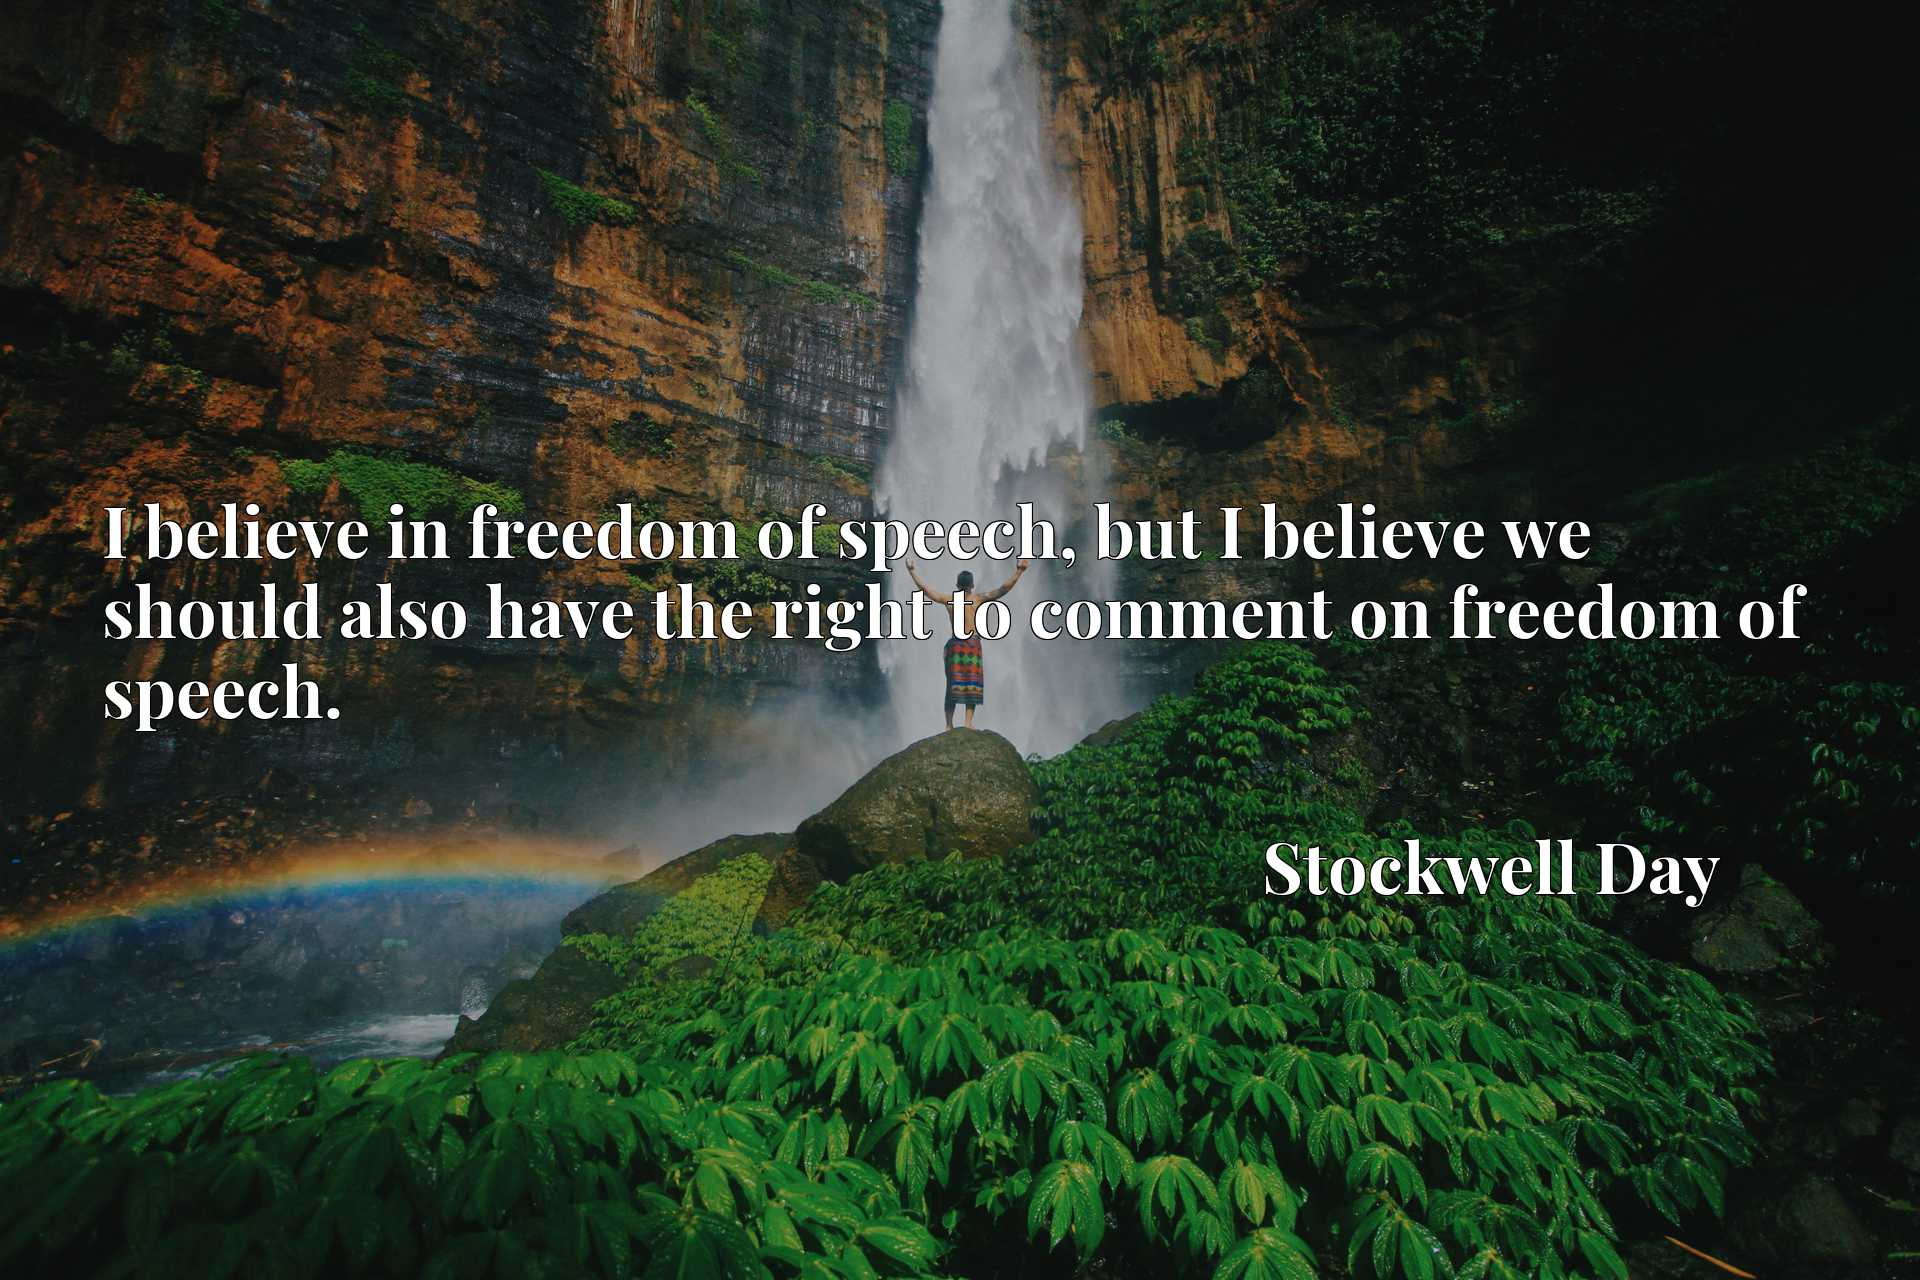 I believe in freedom of speech, but I believe we should also have the right to comment on freedom of speech.